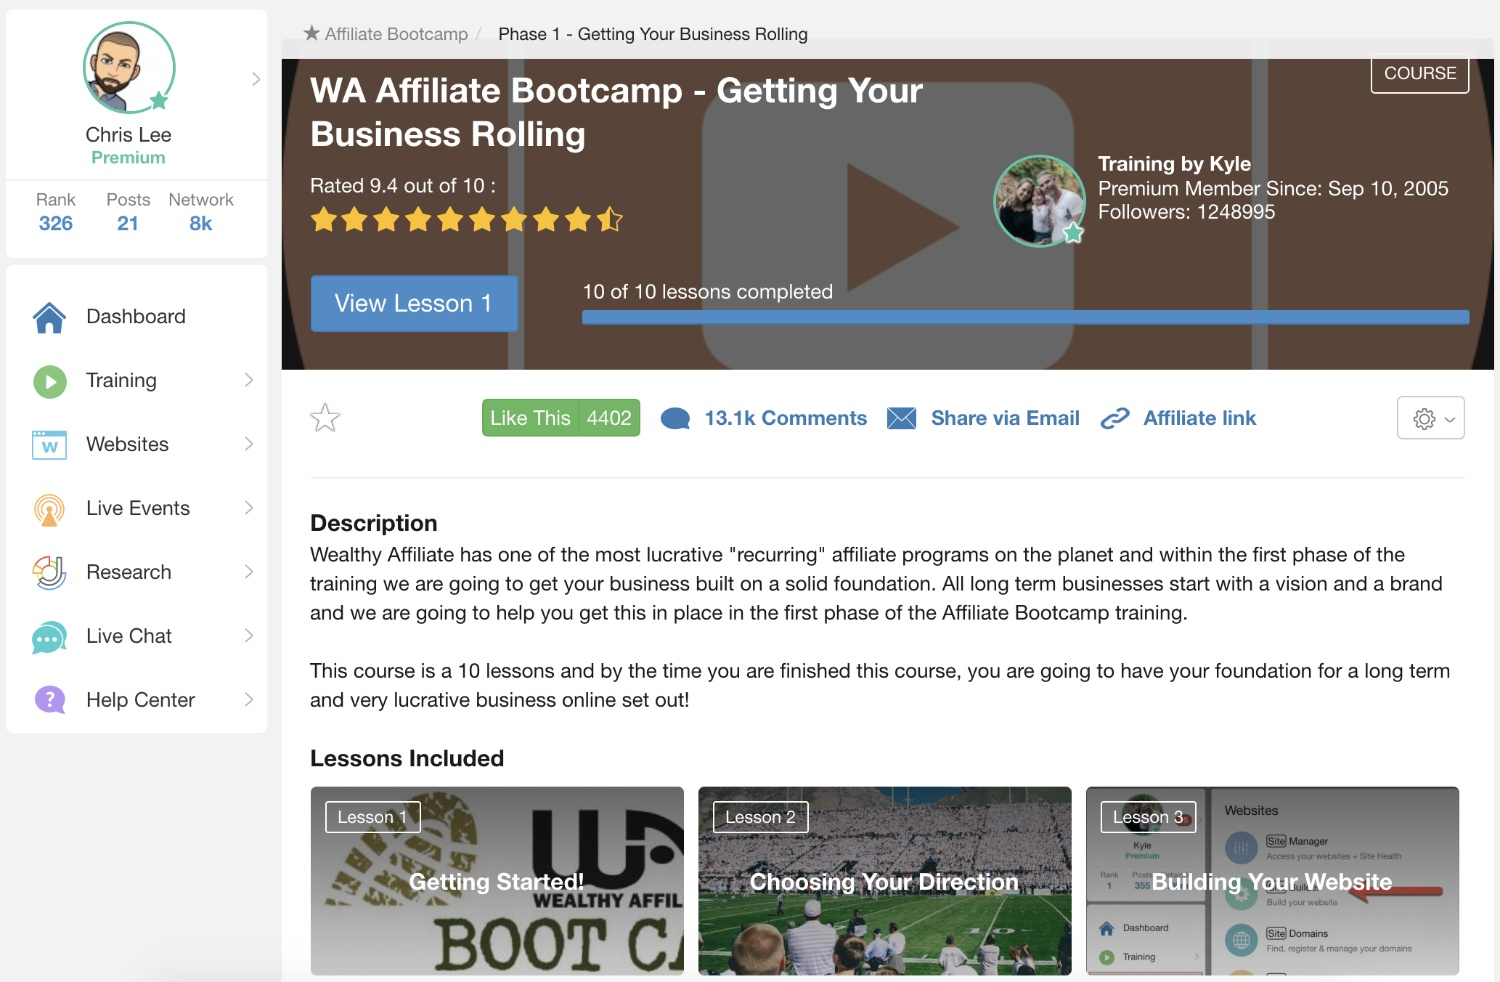 The affiliate Bootcamp course inside Wealthy Affiliate